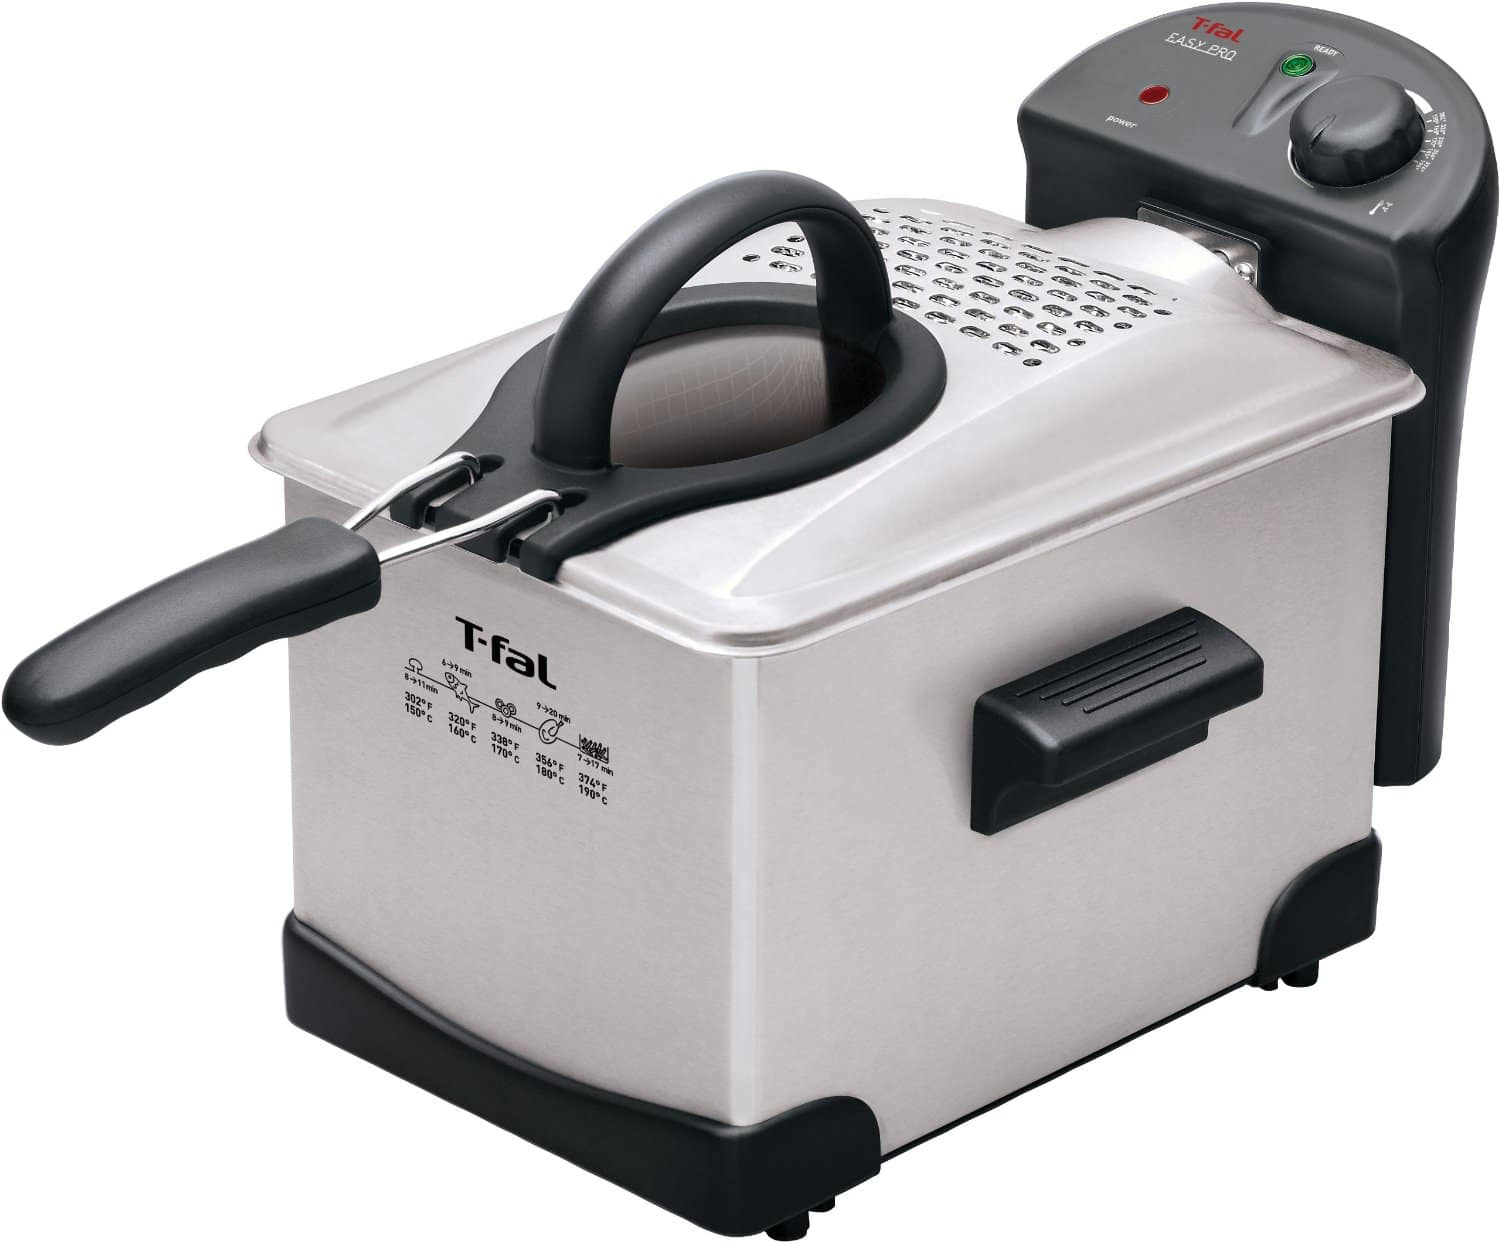 T-fal: EZ Clean Deep Fryer $50, Easy Pro Deep Fryer  $30 & More + Free S&H